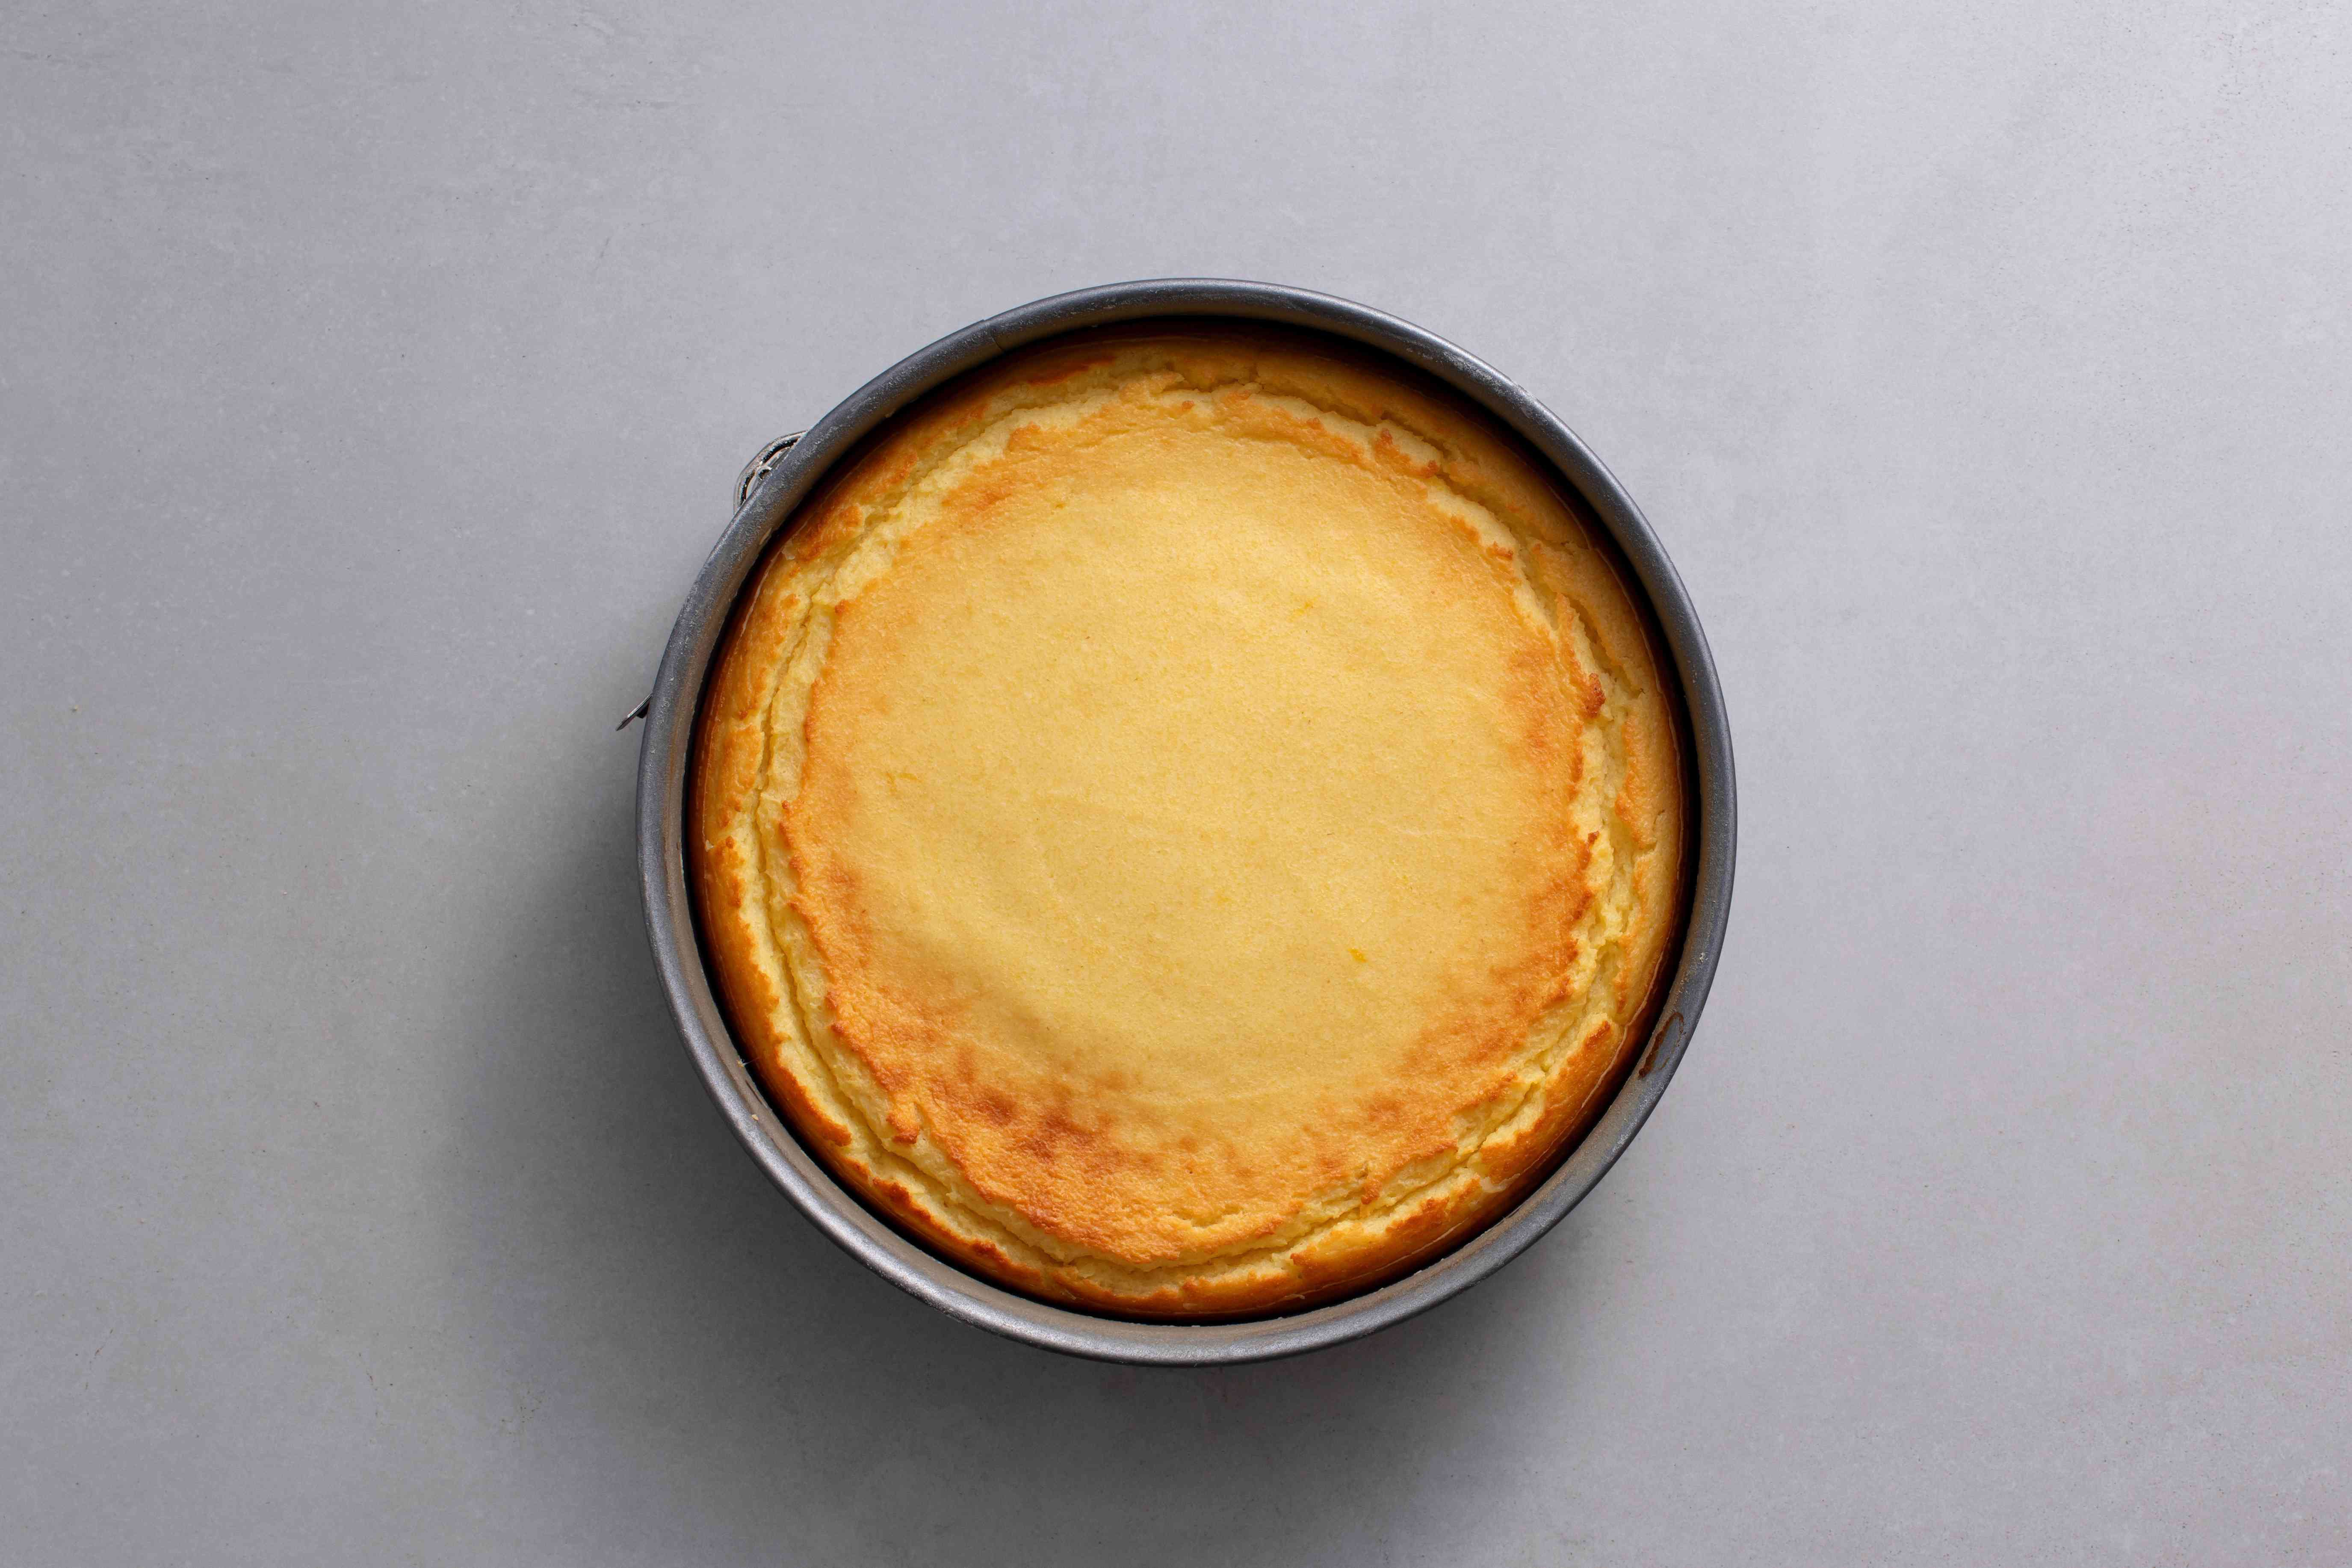 cheesecake in a pan